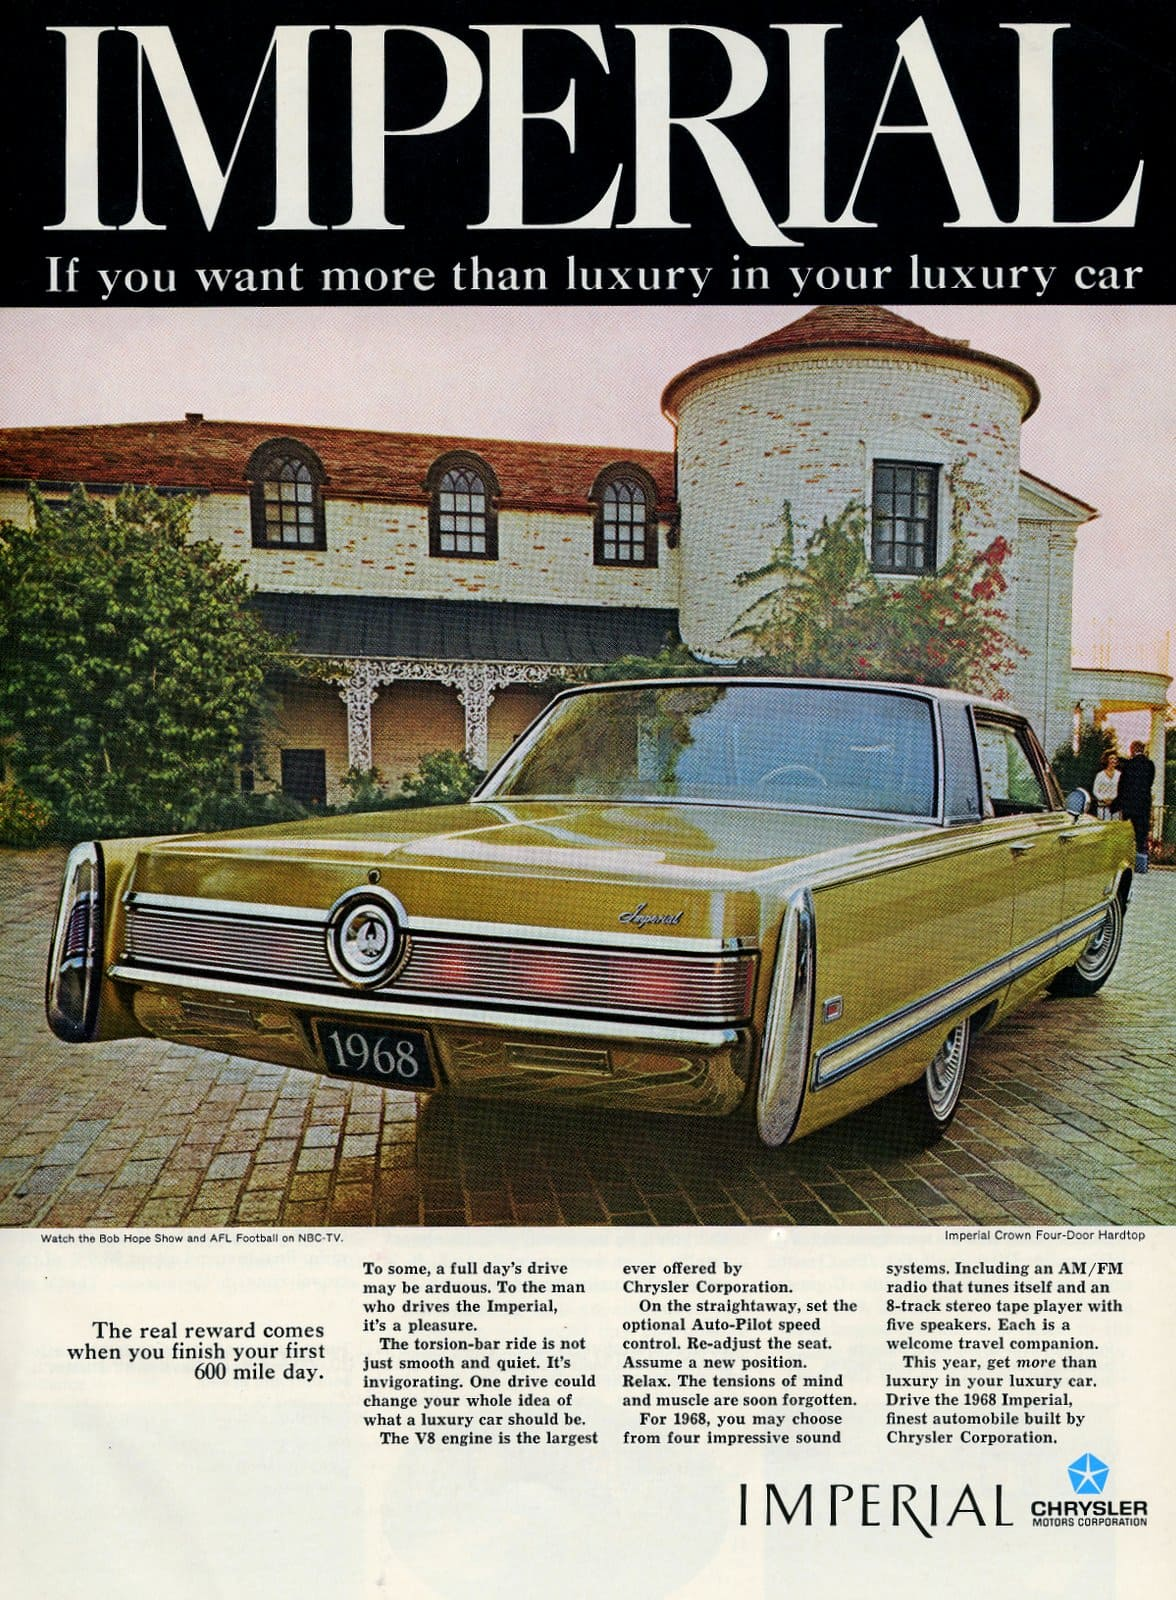 1968 Chrysler Imperial - vintage classic car ad (1)